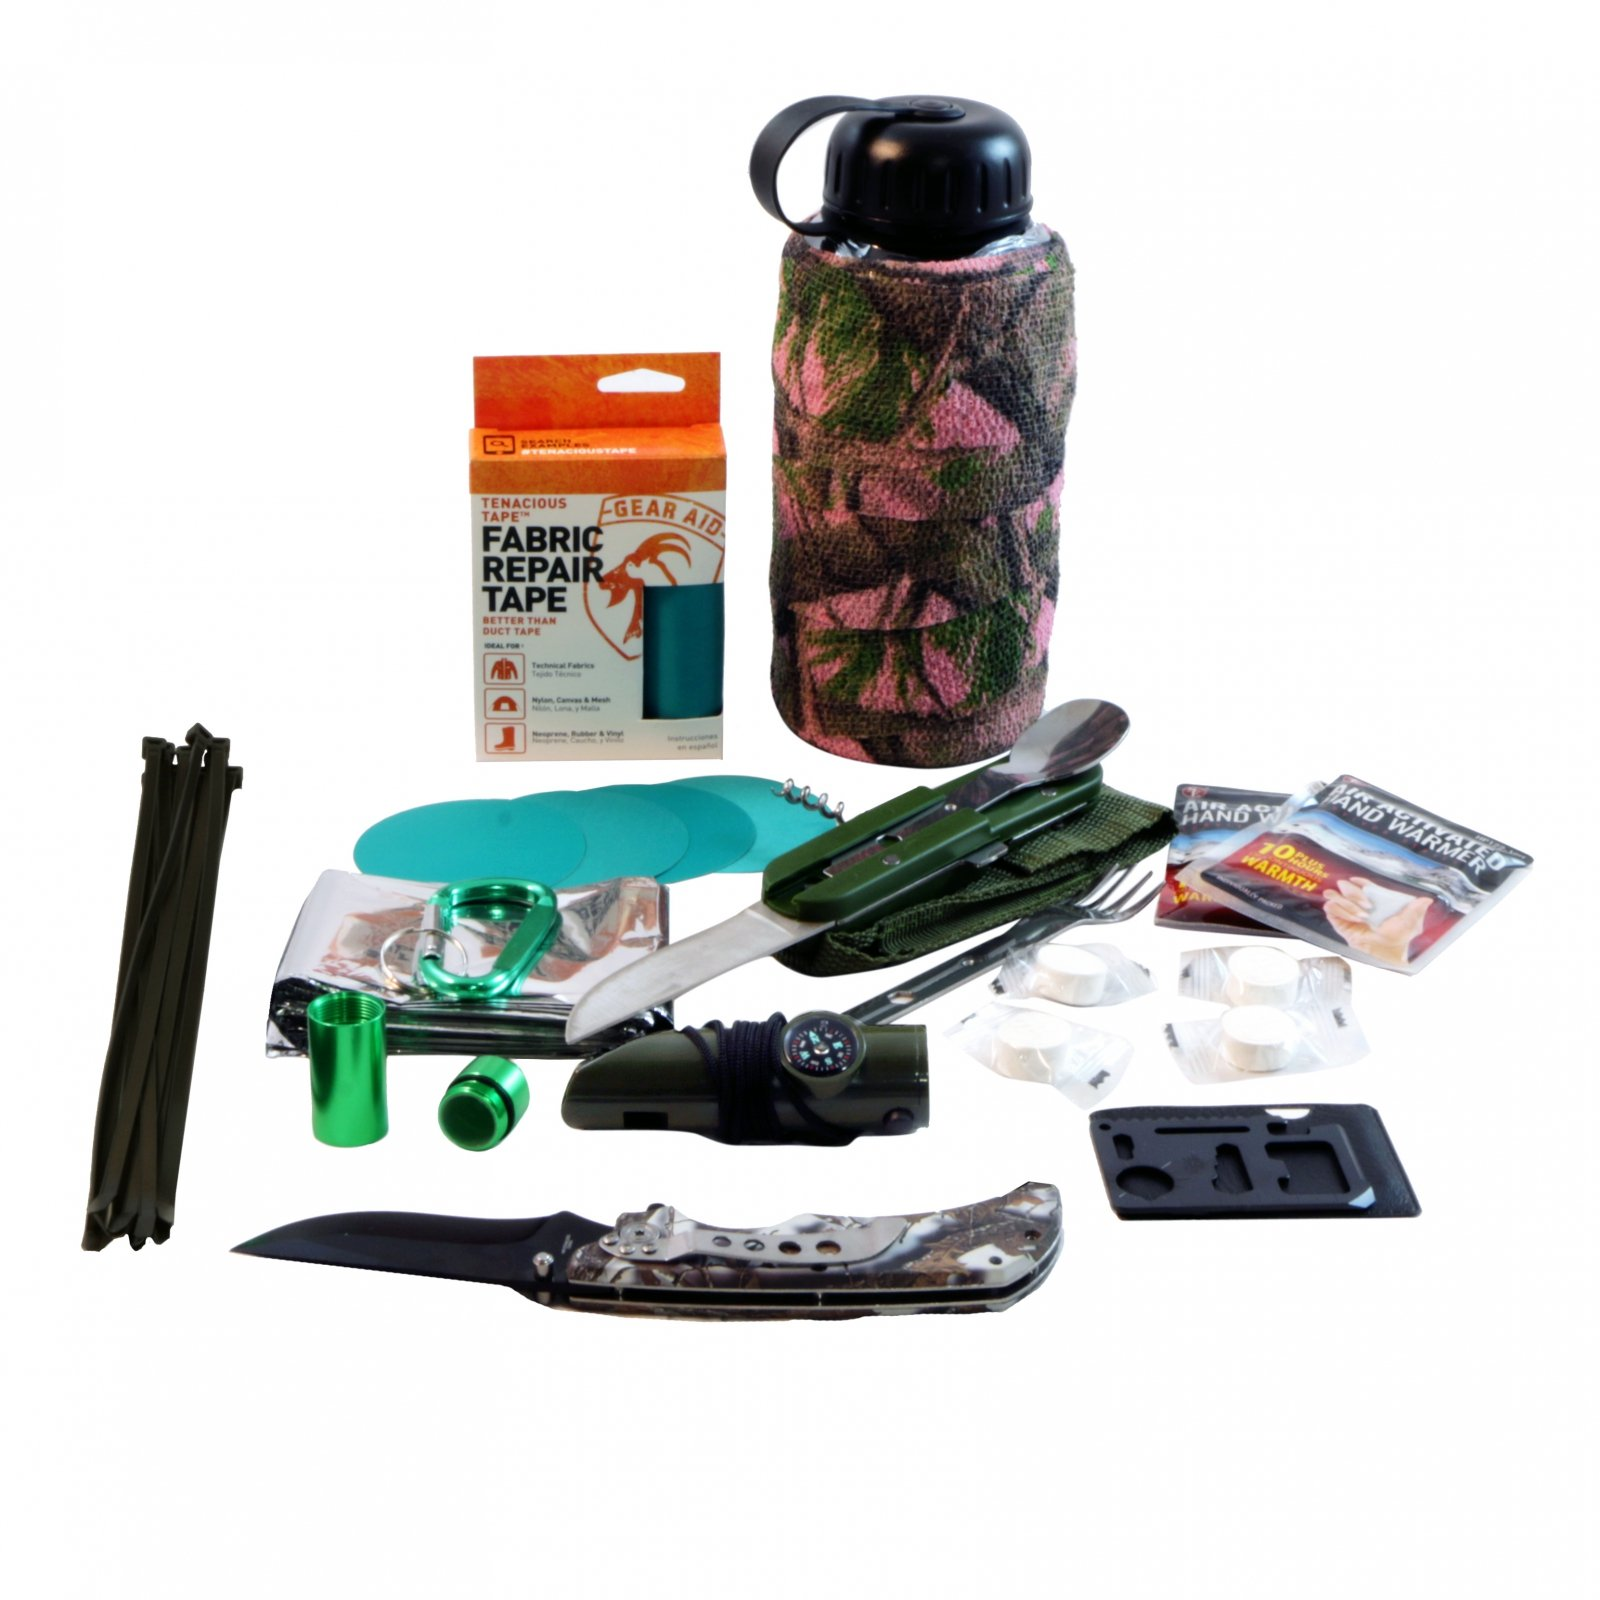 ASR Outdoor Womens Camo Bottle Survival Kit Gear Repair Tape Camping Tools Teal